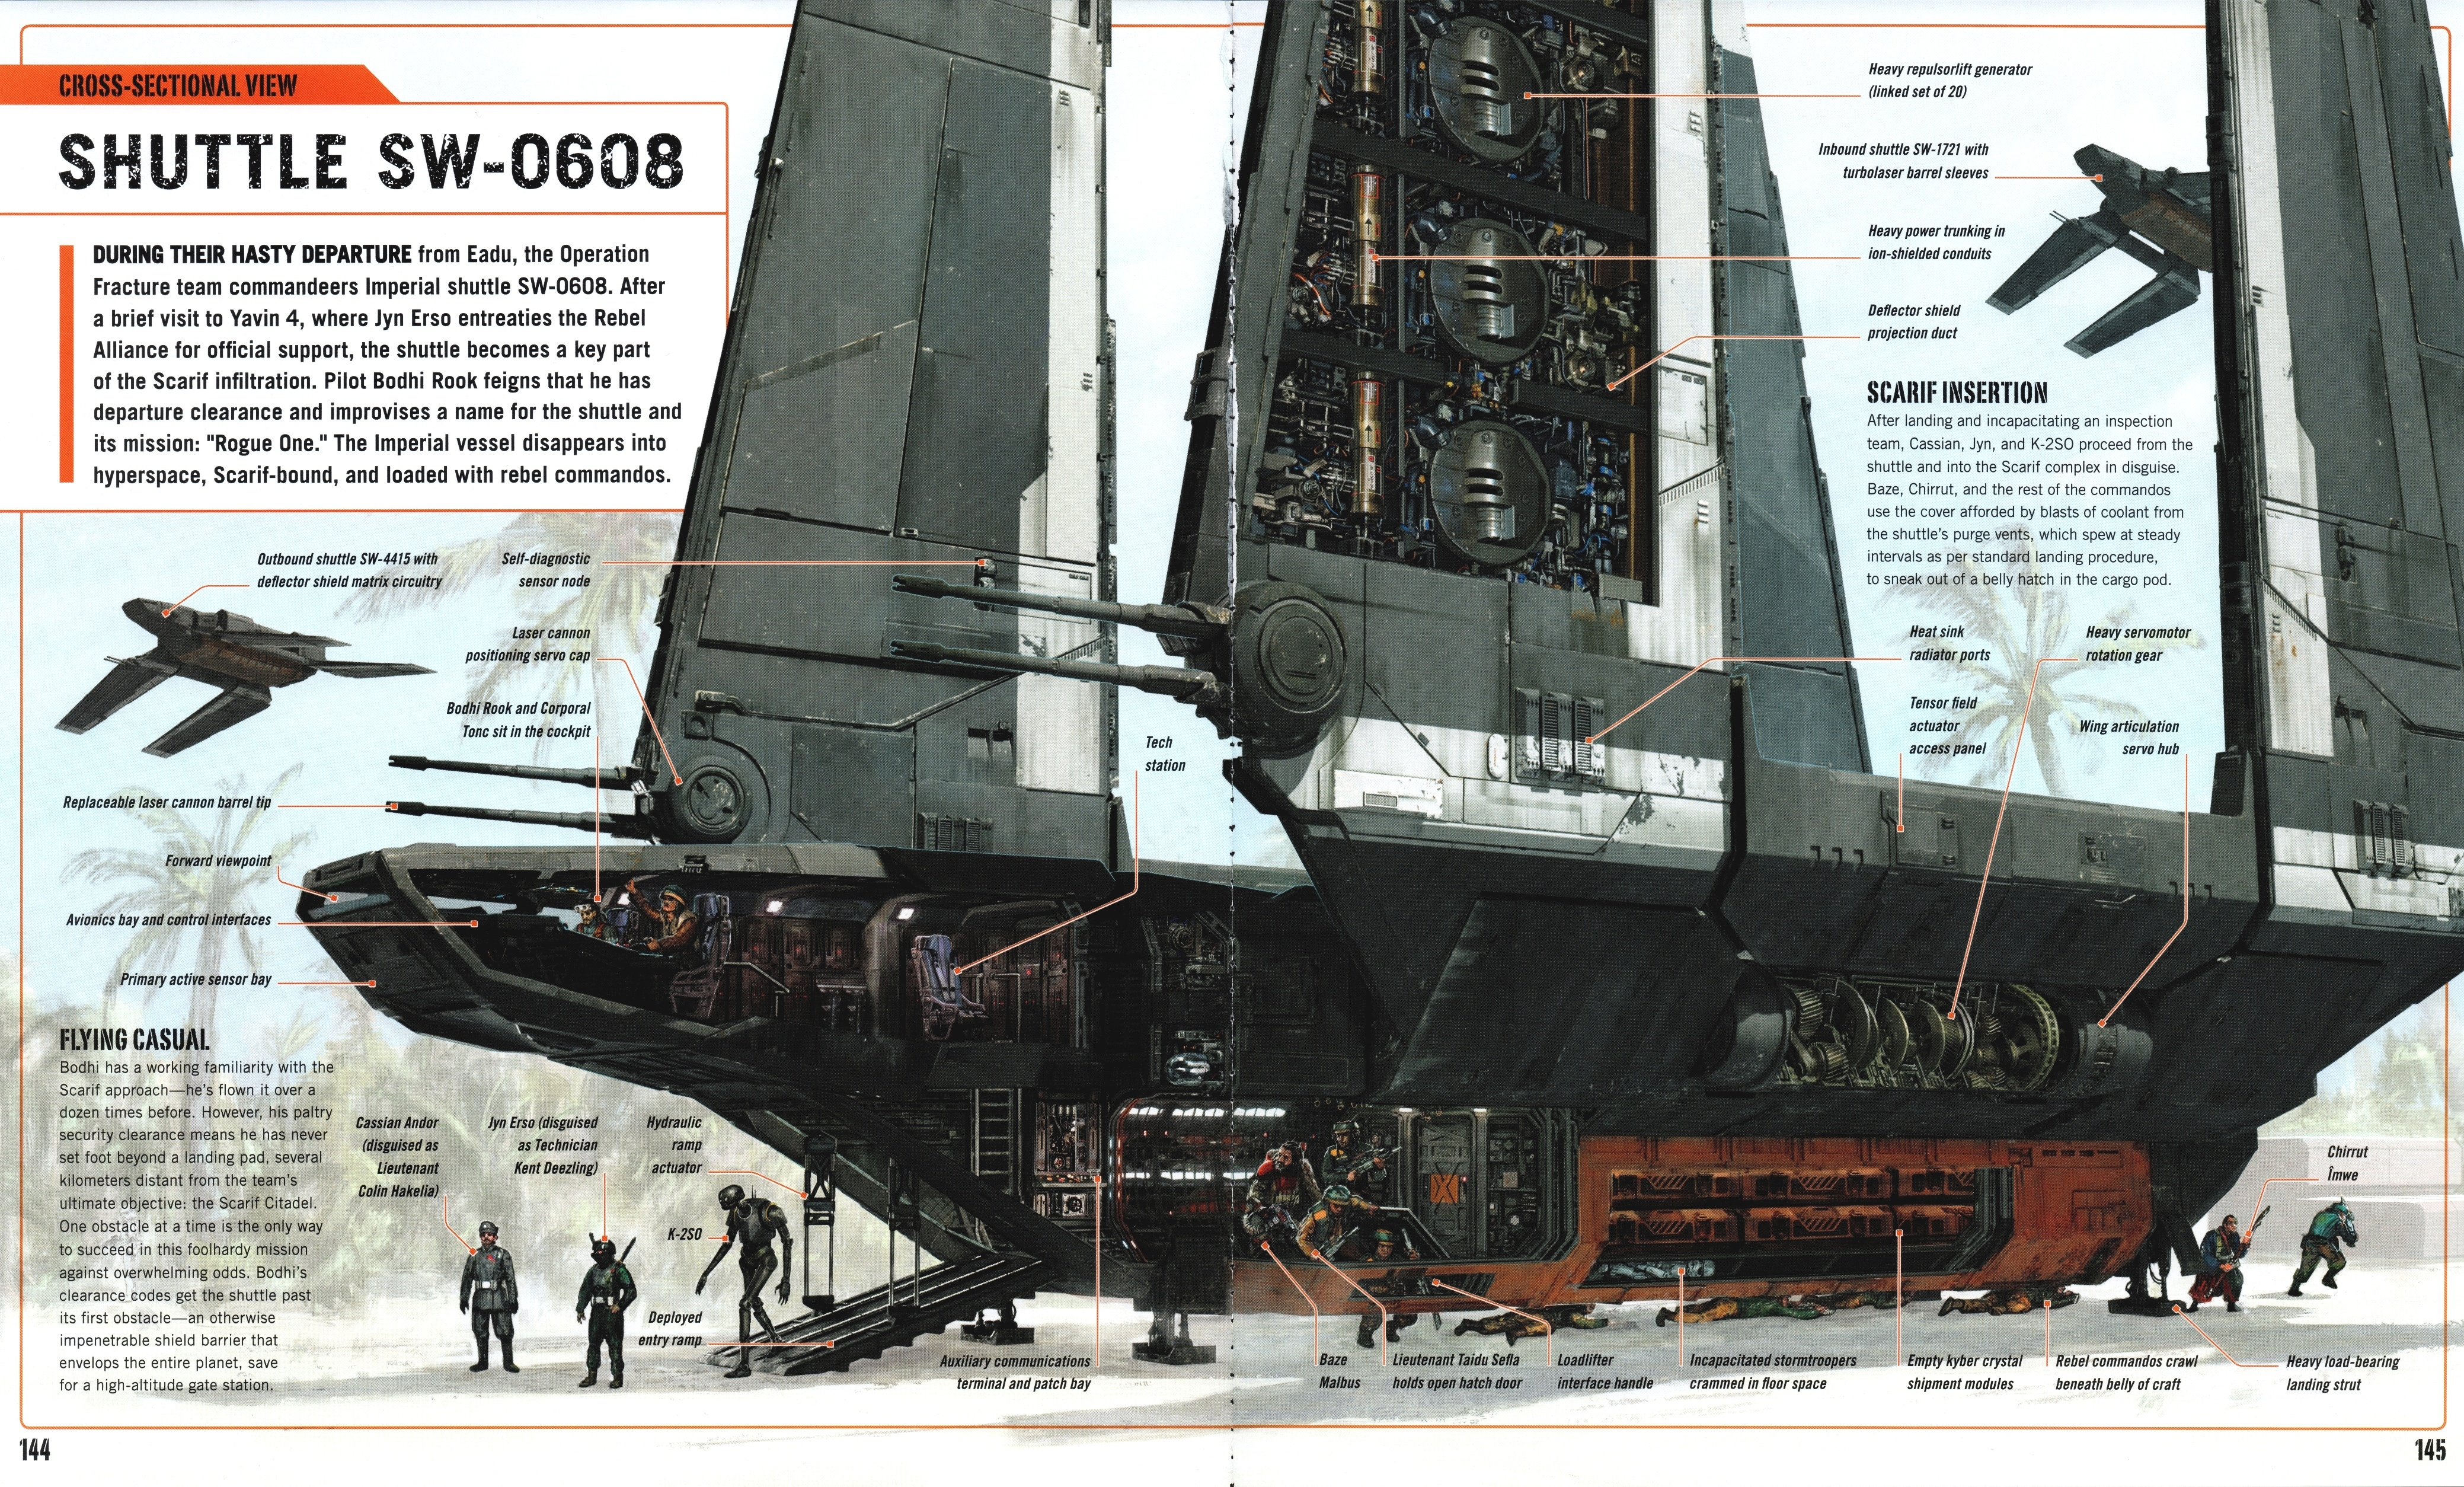 Rogue One Ultimate Visual Guide (b0bafett_Empire) p144-145